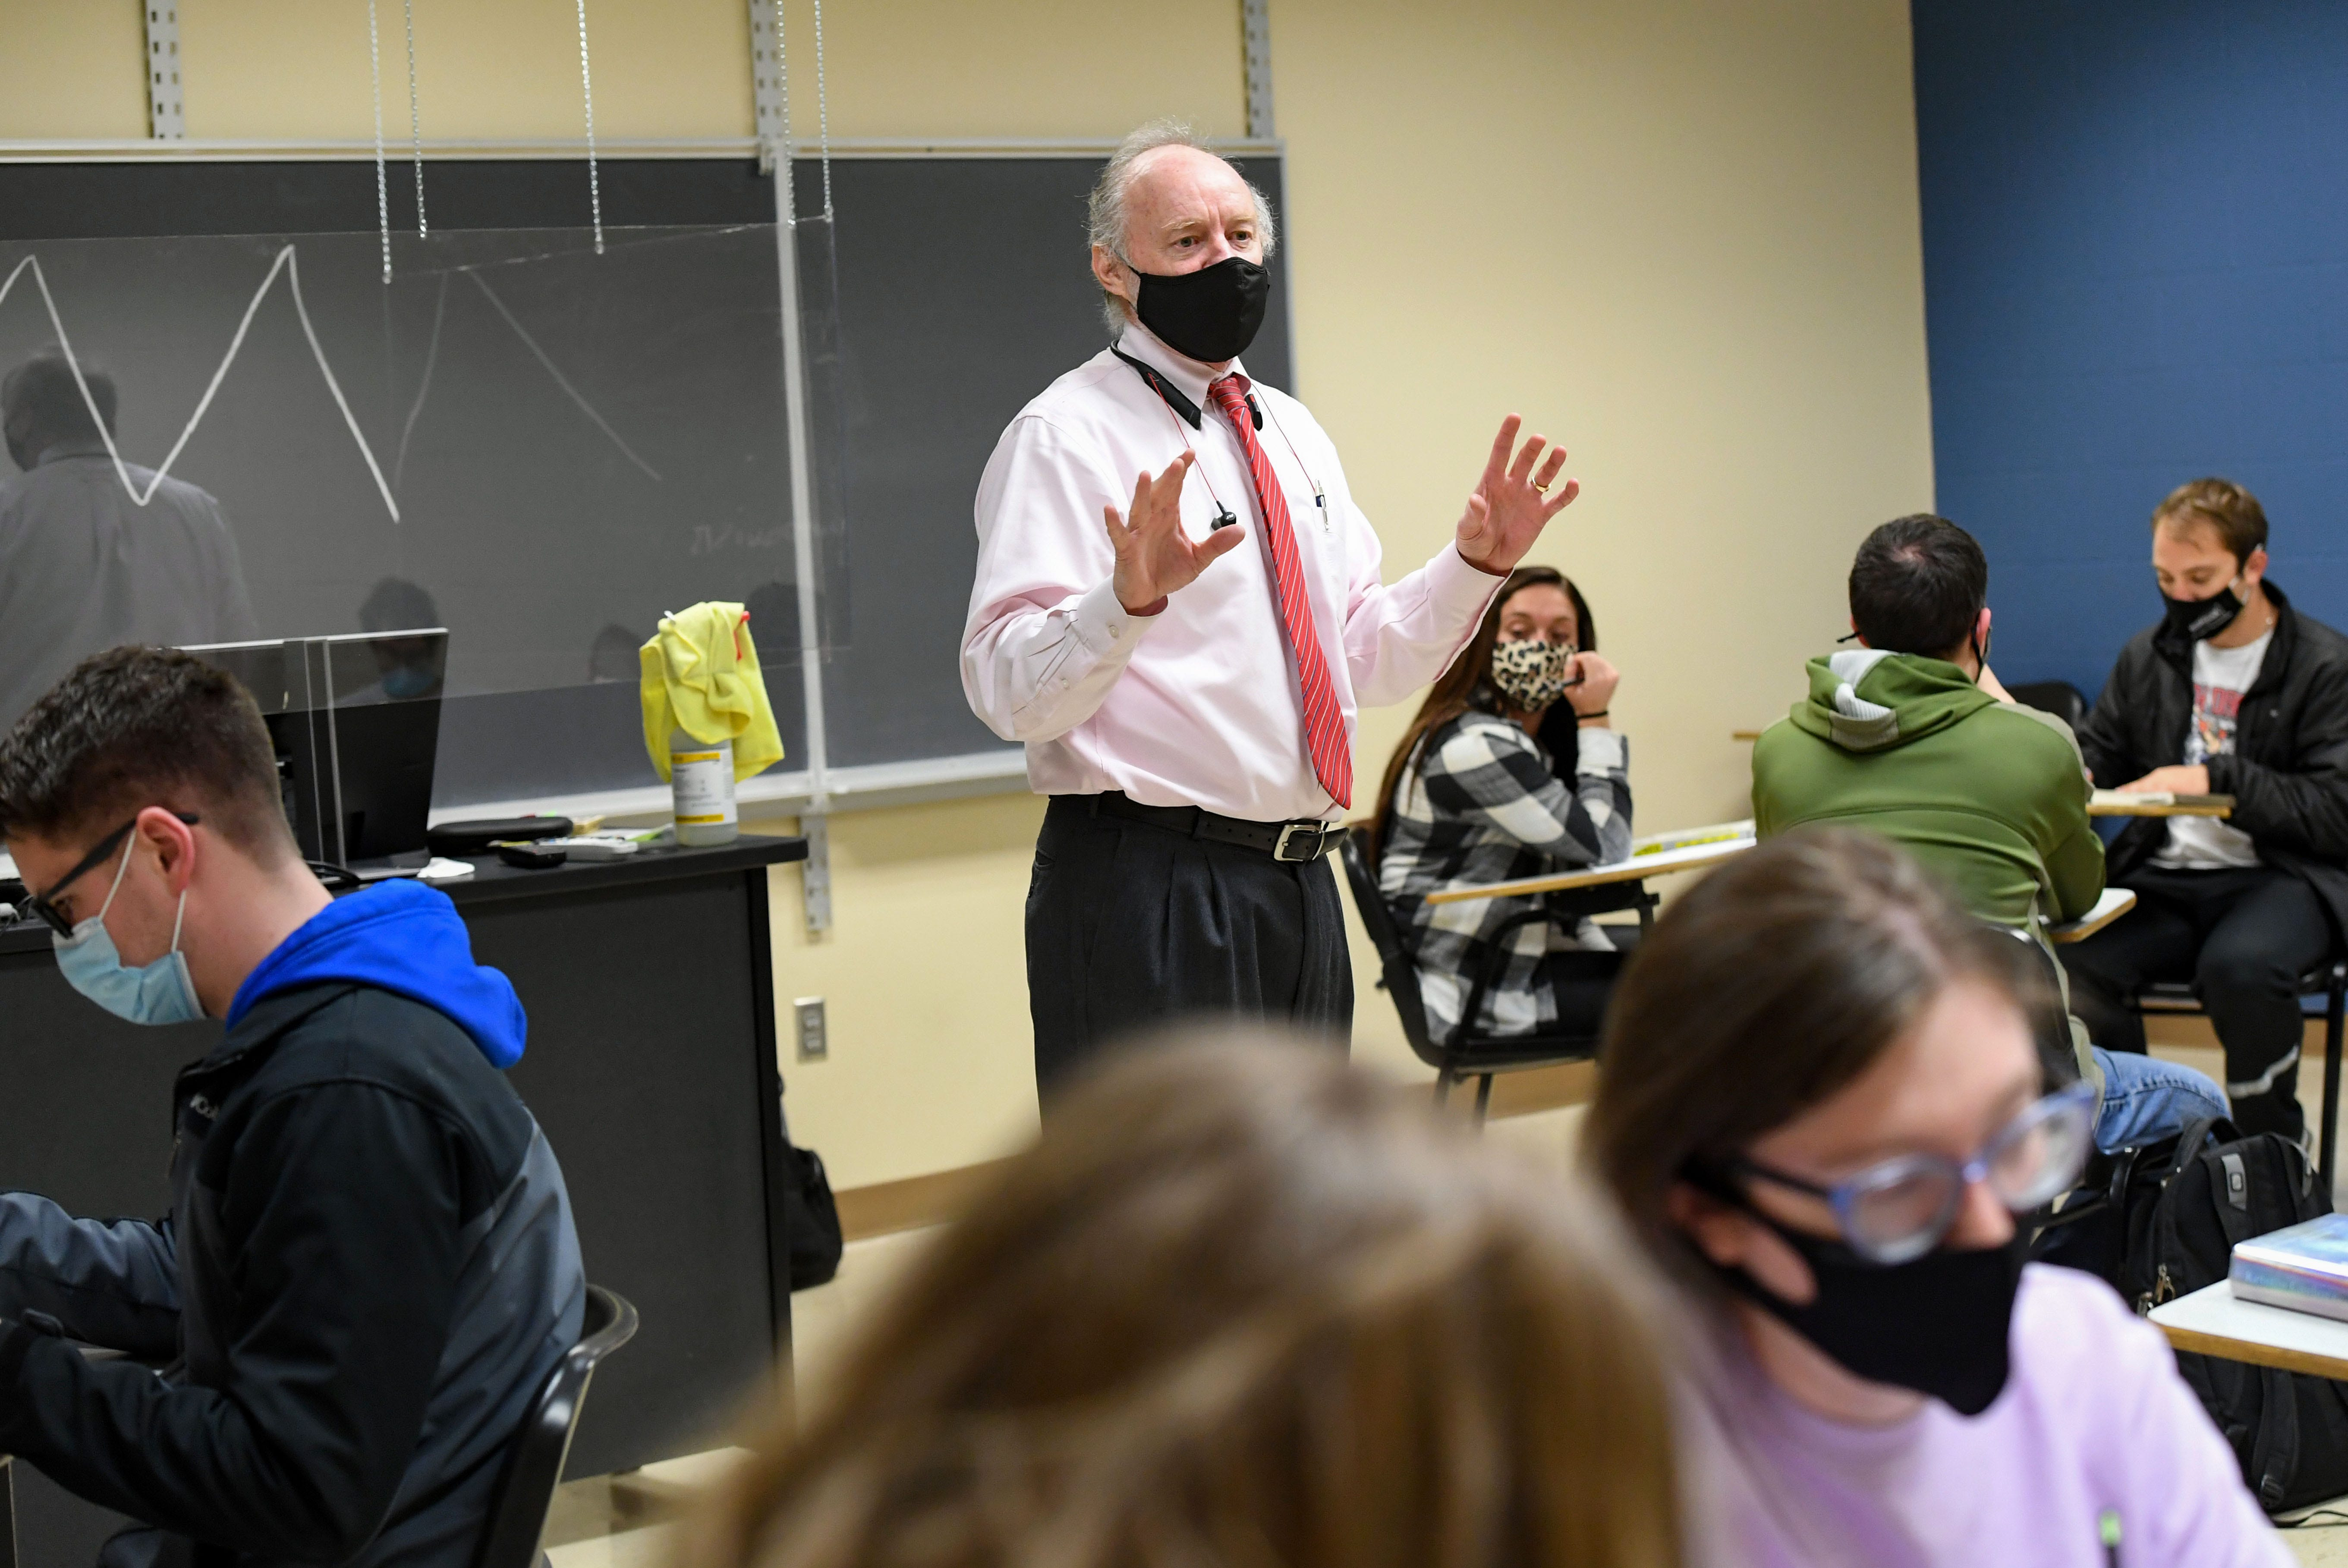 Michael Mullin, chair of Augustana's history department, in classroom